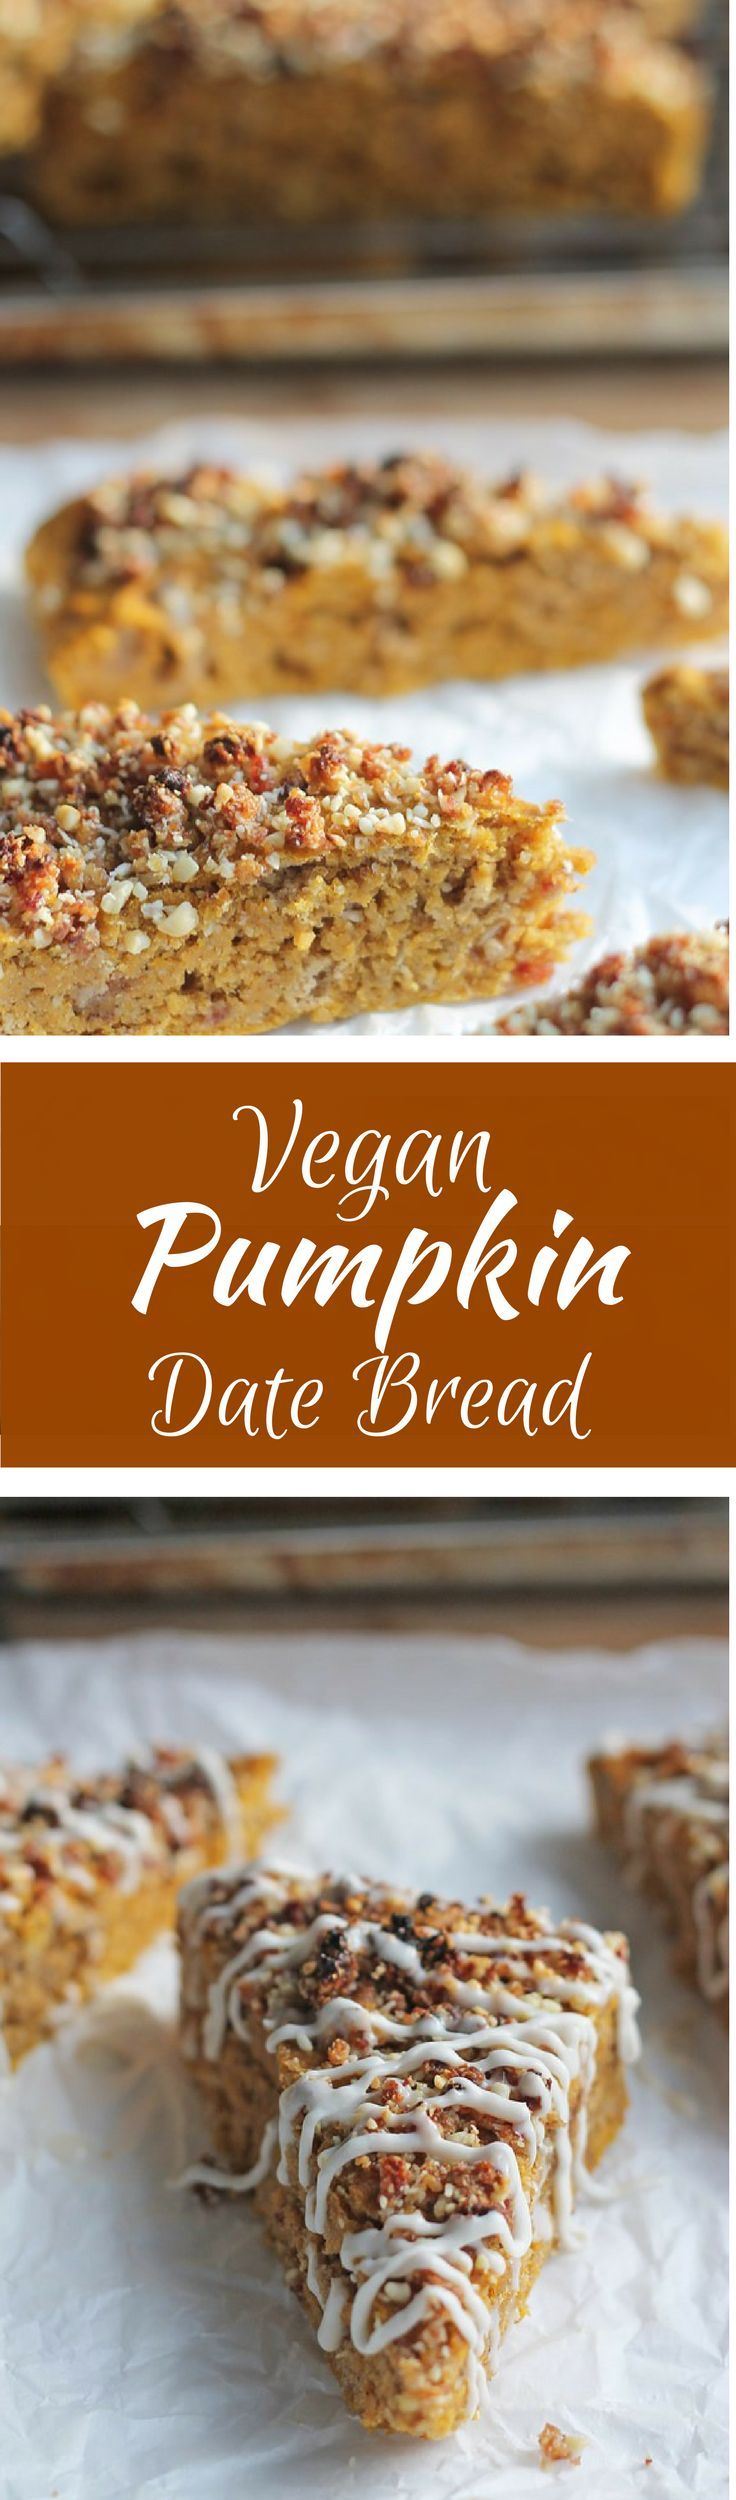 Moist batter = moist vegan pumpkin bread, topped off with almond, date and coconut crumbs.| thewholeserving.com.